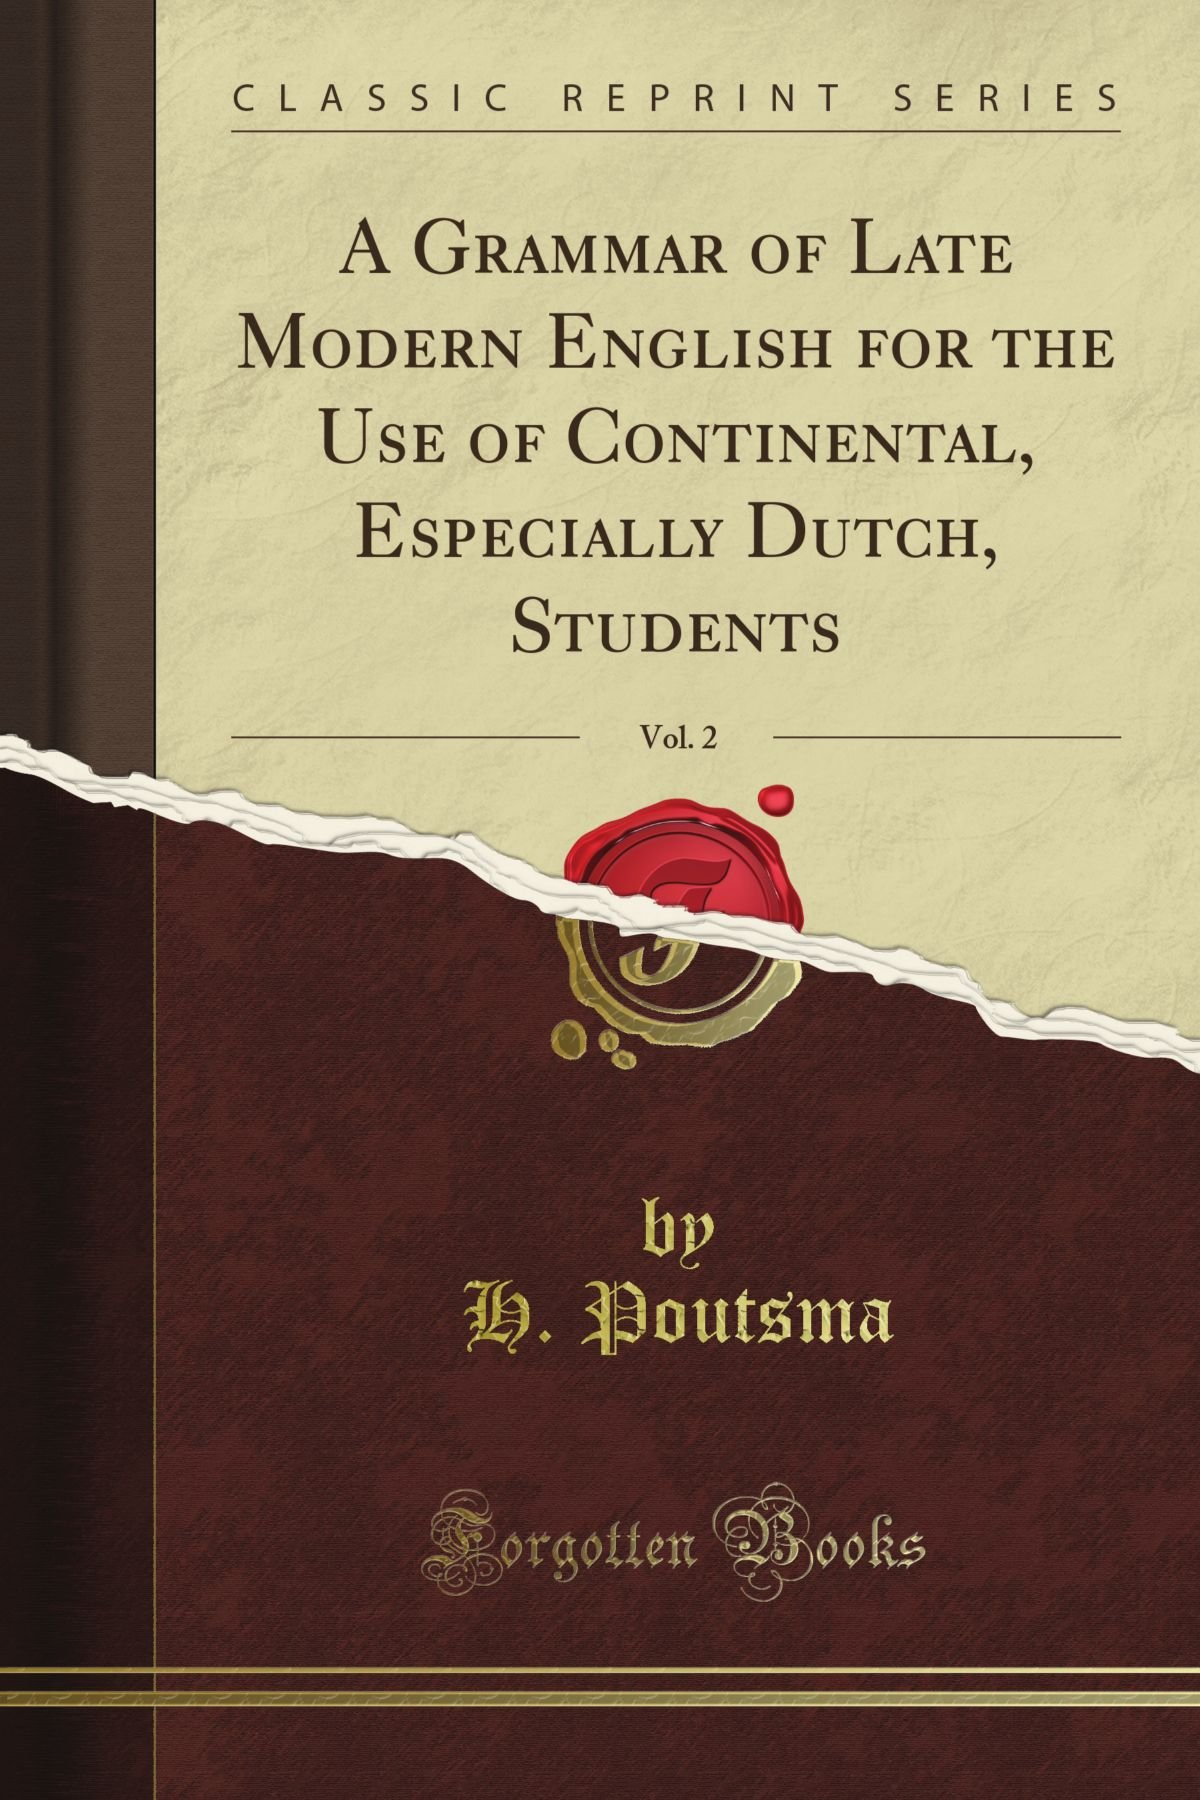 A Grammar of Late Modern English for the Use of Continental, Especially Dutch, Students, Vol. 2 (Classic Reprint) PDF